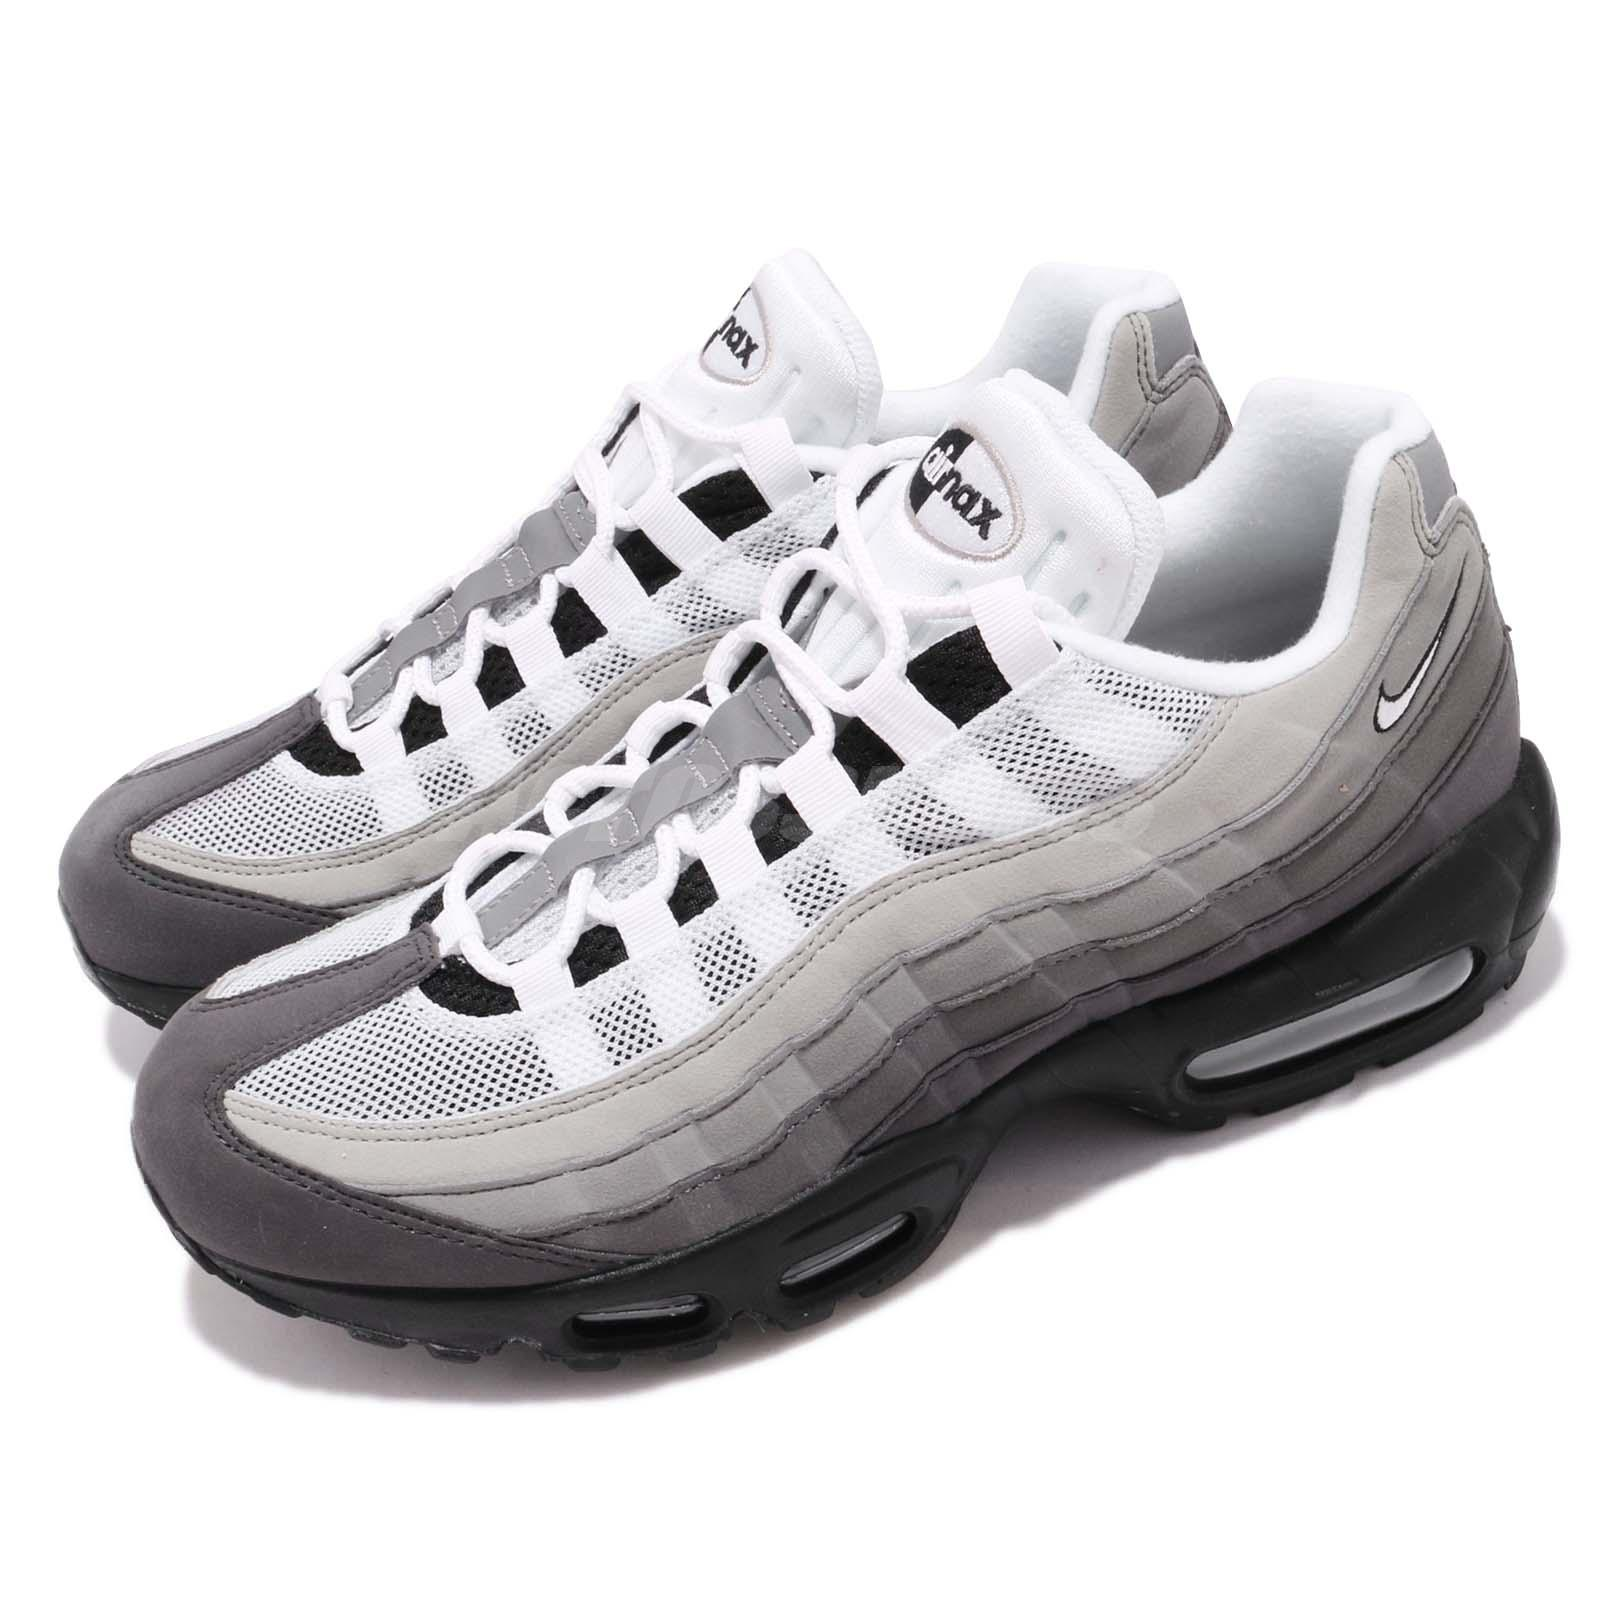 Details about Nike Air Max 95 OG White Grey Gradient Men Running Lifestyle Shoes AT2865 003